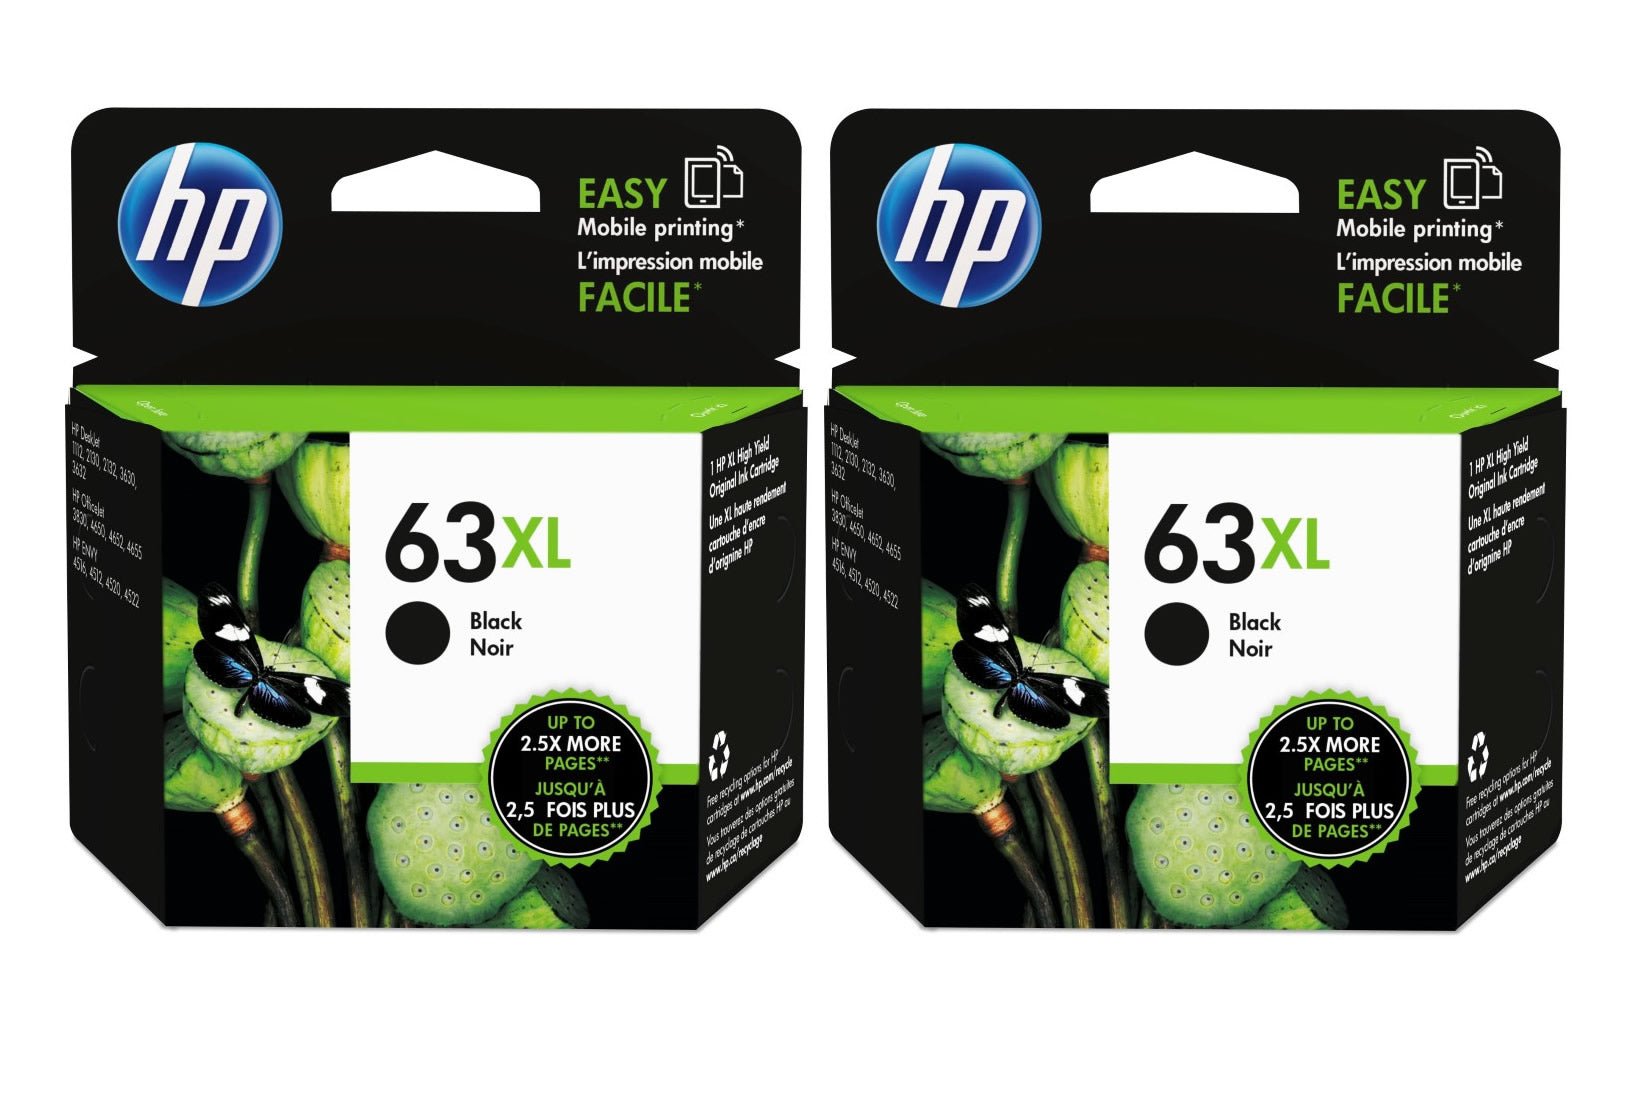 HP Ink Cartridge (for OfficeJet 3830/4650) (Twin Pack) - Black [63XL]